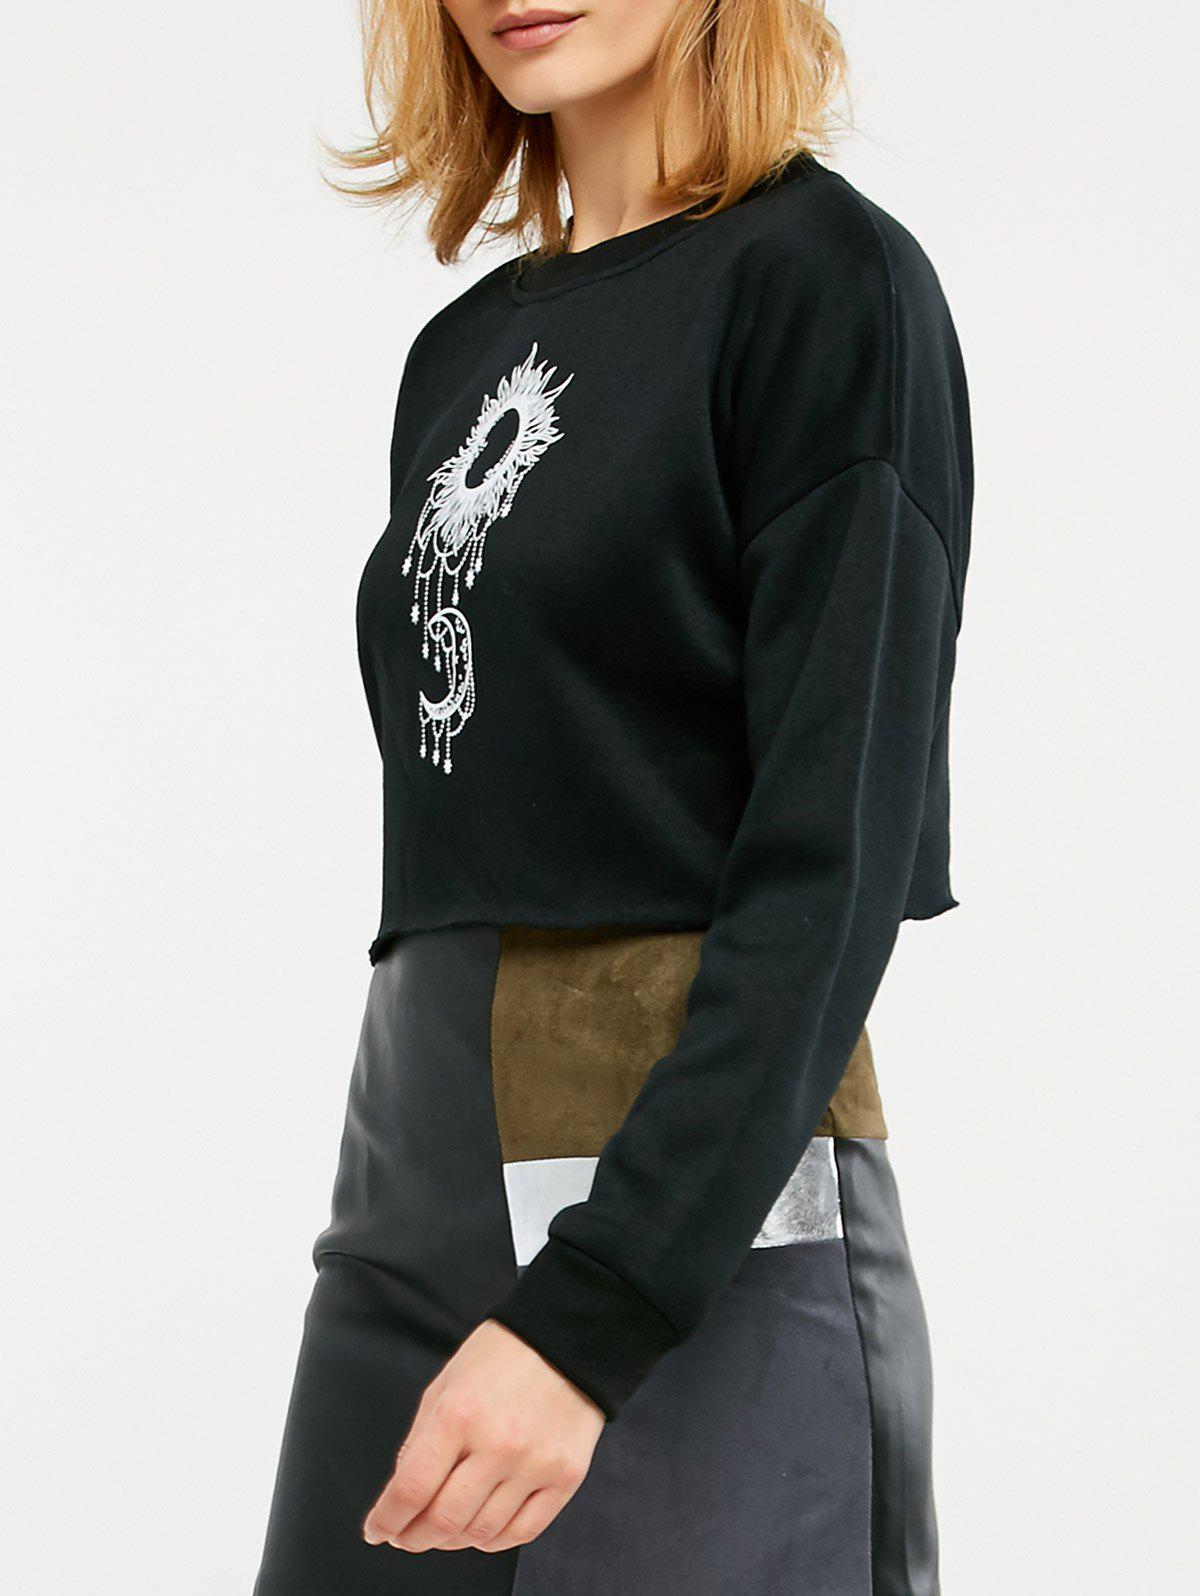 Trendy Sun and Moon Print Cropped Sweatshirt